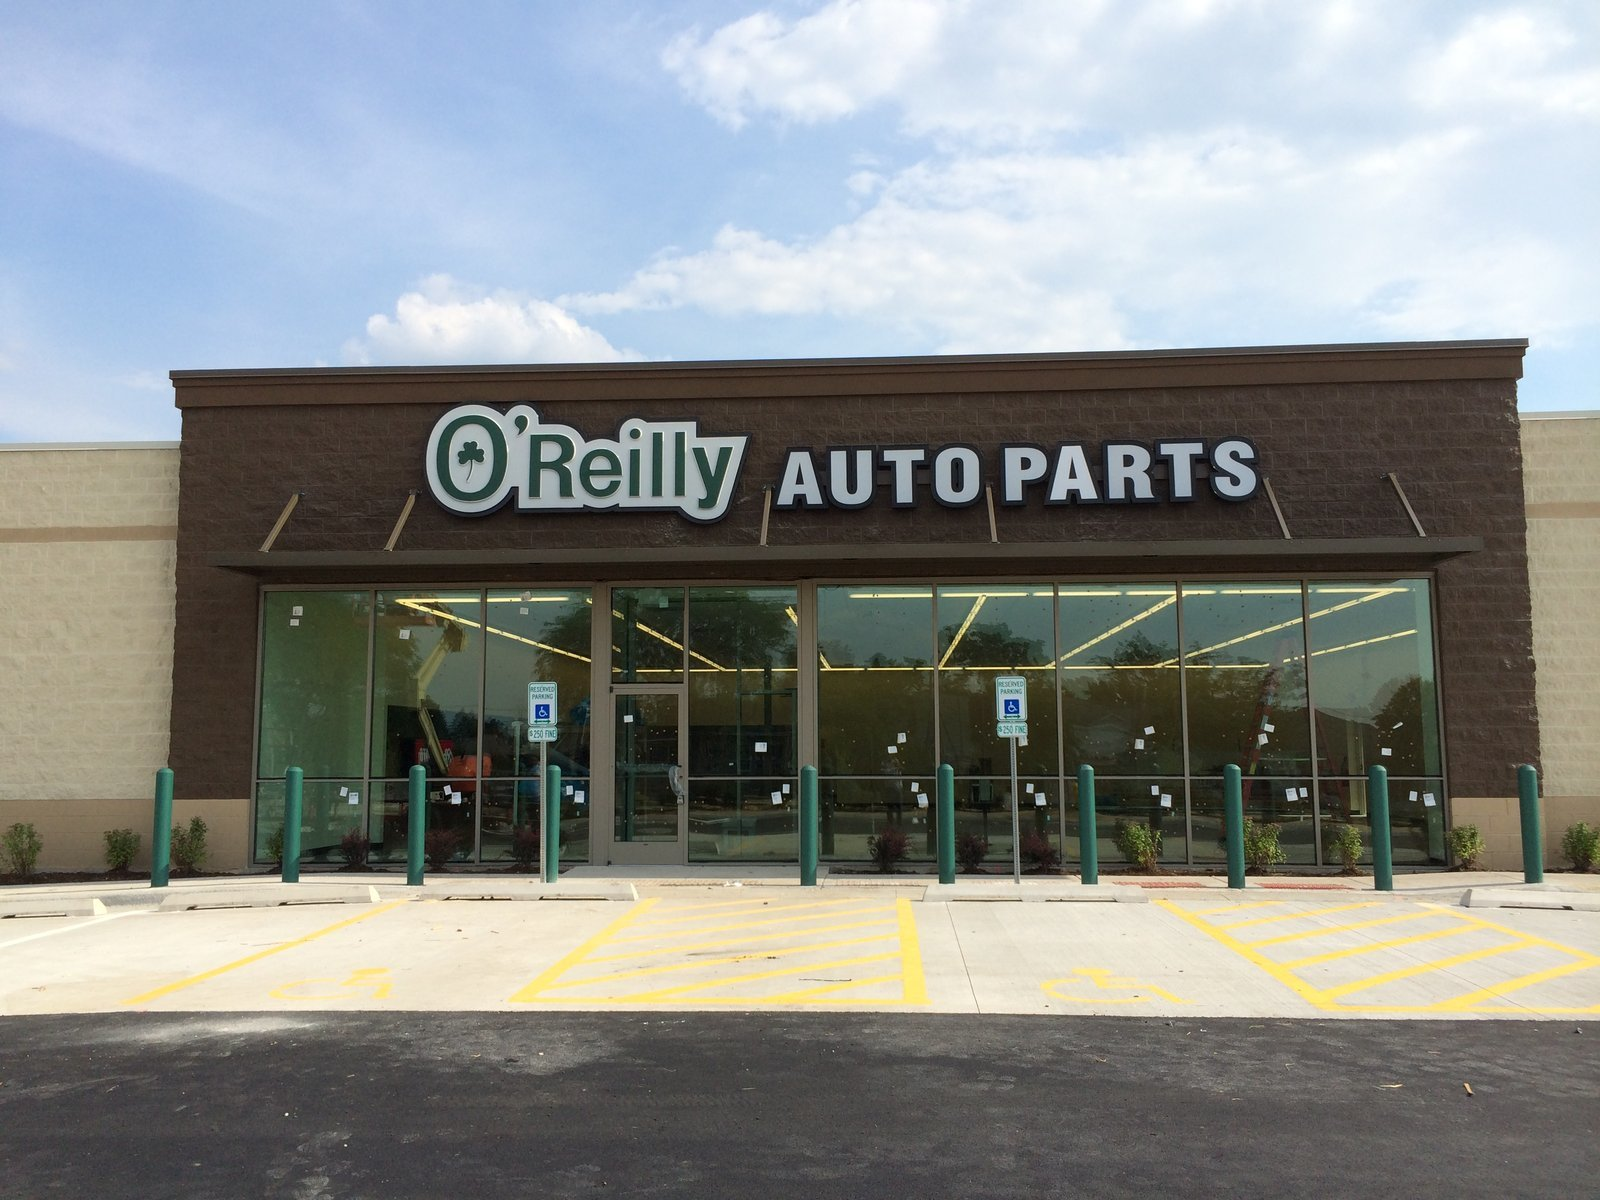 Find a O'Reilly auto parts location near you at 11 State Road. We offer a full selection of automotive aftermarket parts, tools, supplies, equipment, and accessories for your vehicle.